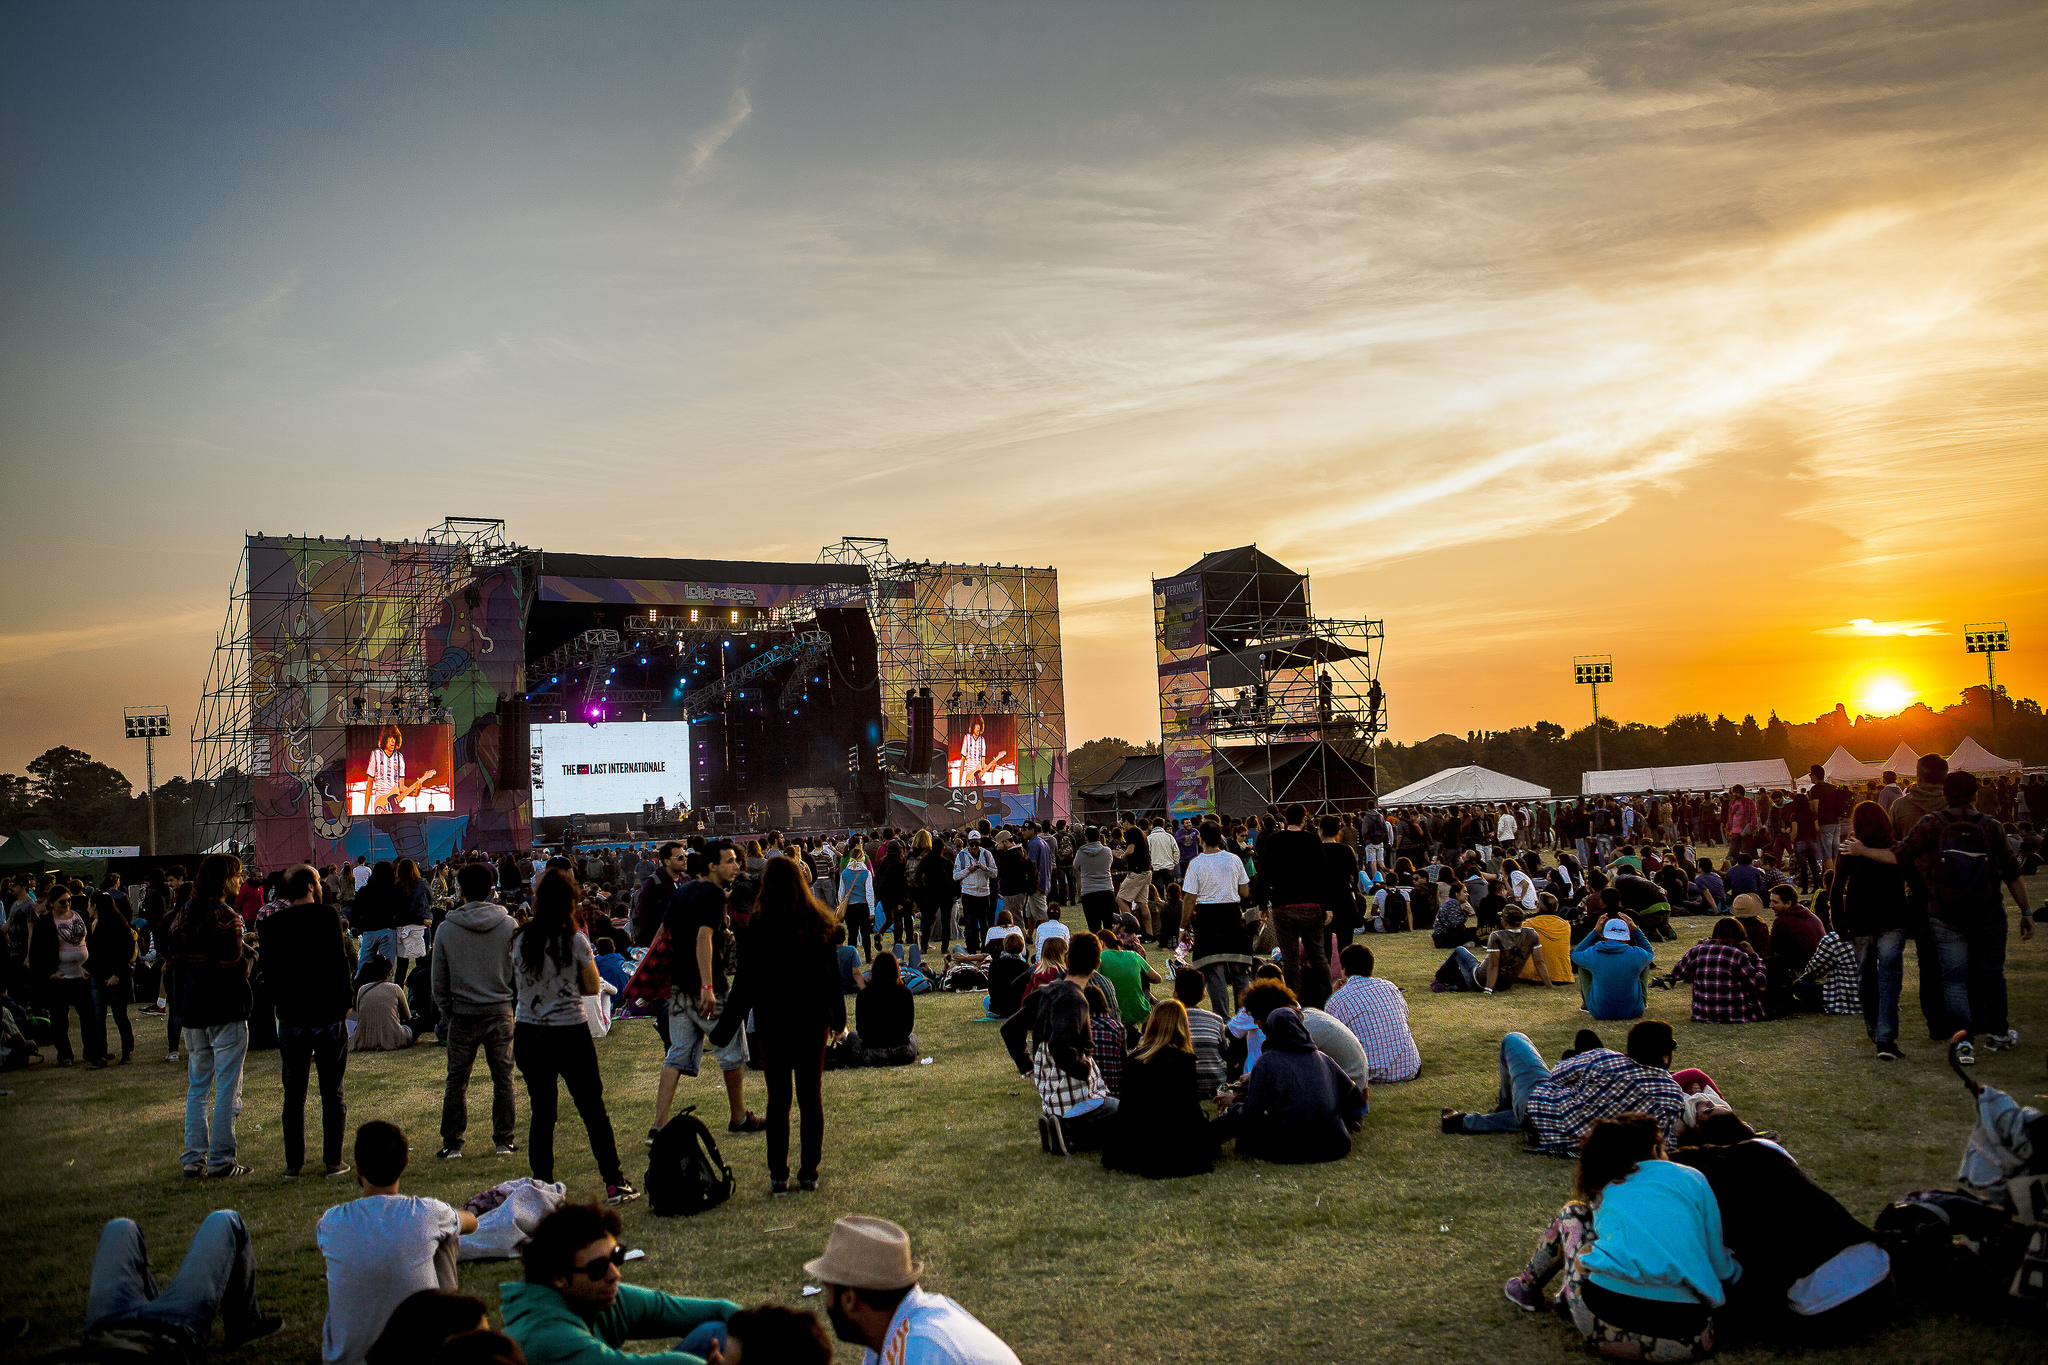 """Lollapalooza Argentina 2015"" by Leonardo Samrani via Flickr Creative Commons"